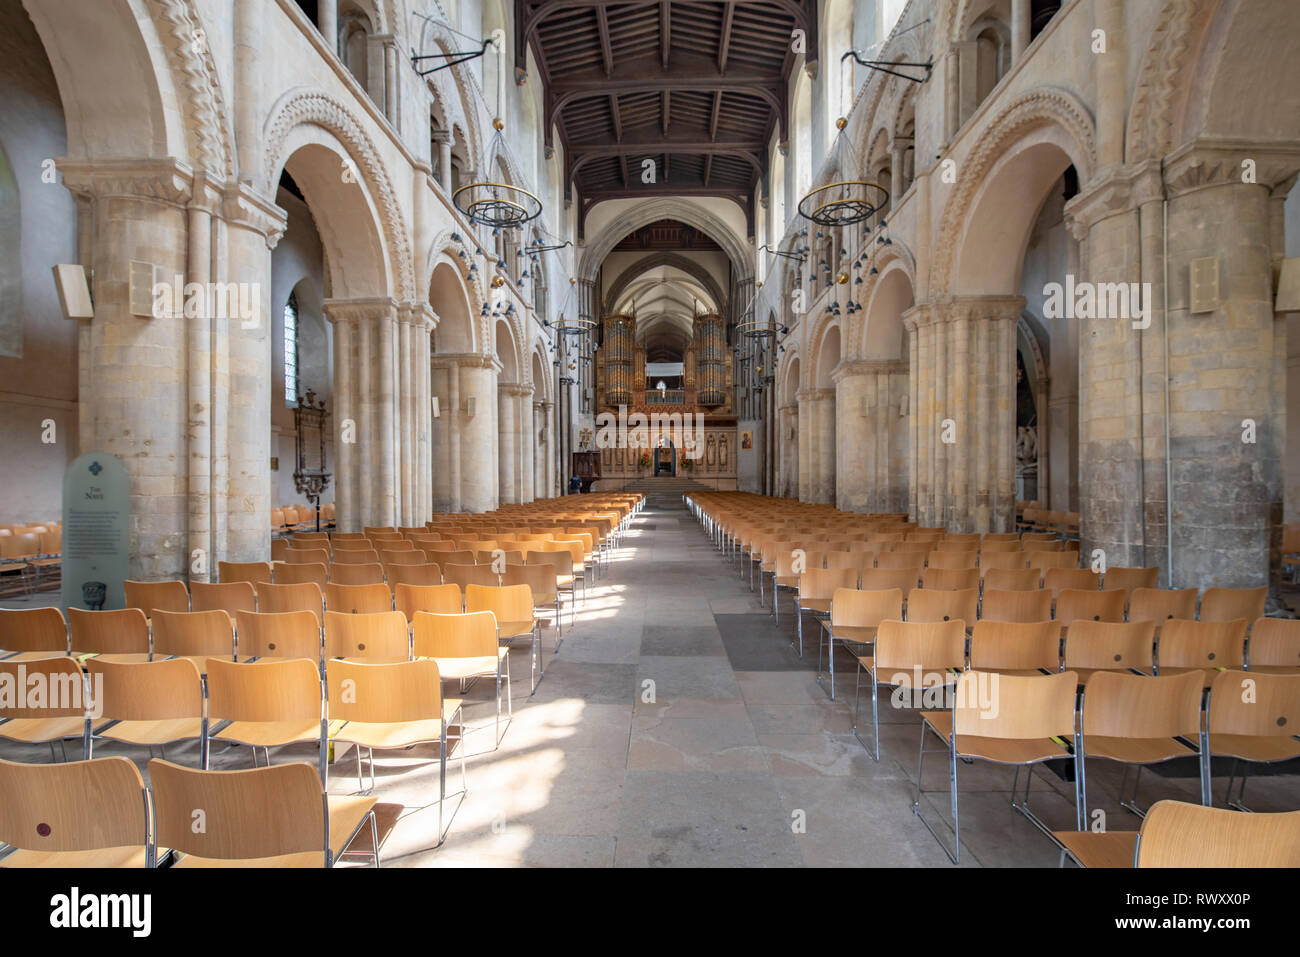 Interior views of the Cathedral in Rochester on  a sunny day with light flooding in and casting shadows. the pipe organ, nave and Transepts and tomb - Stock Image